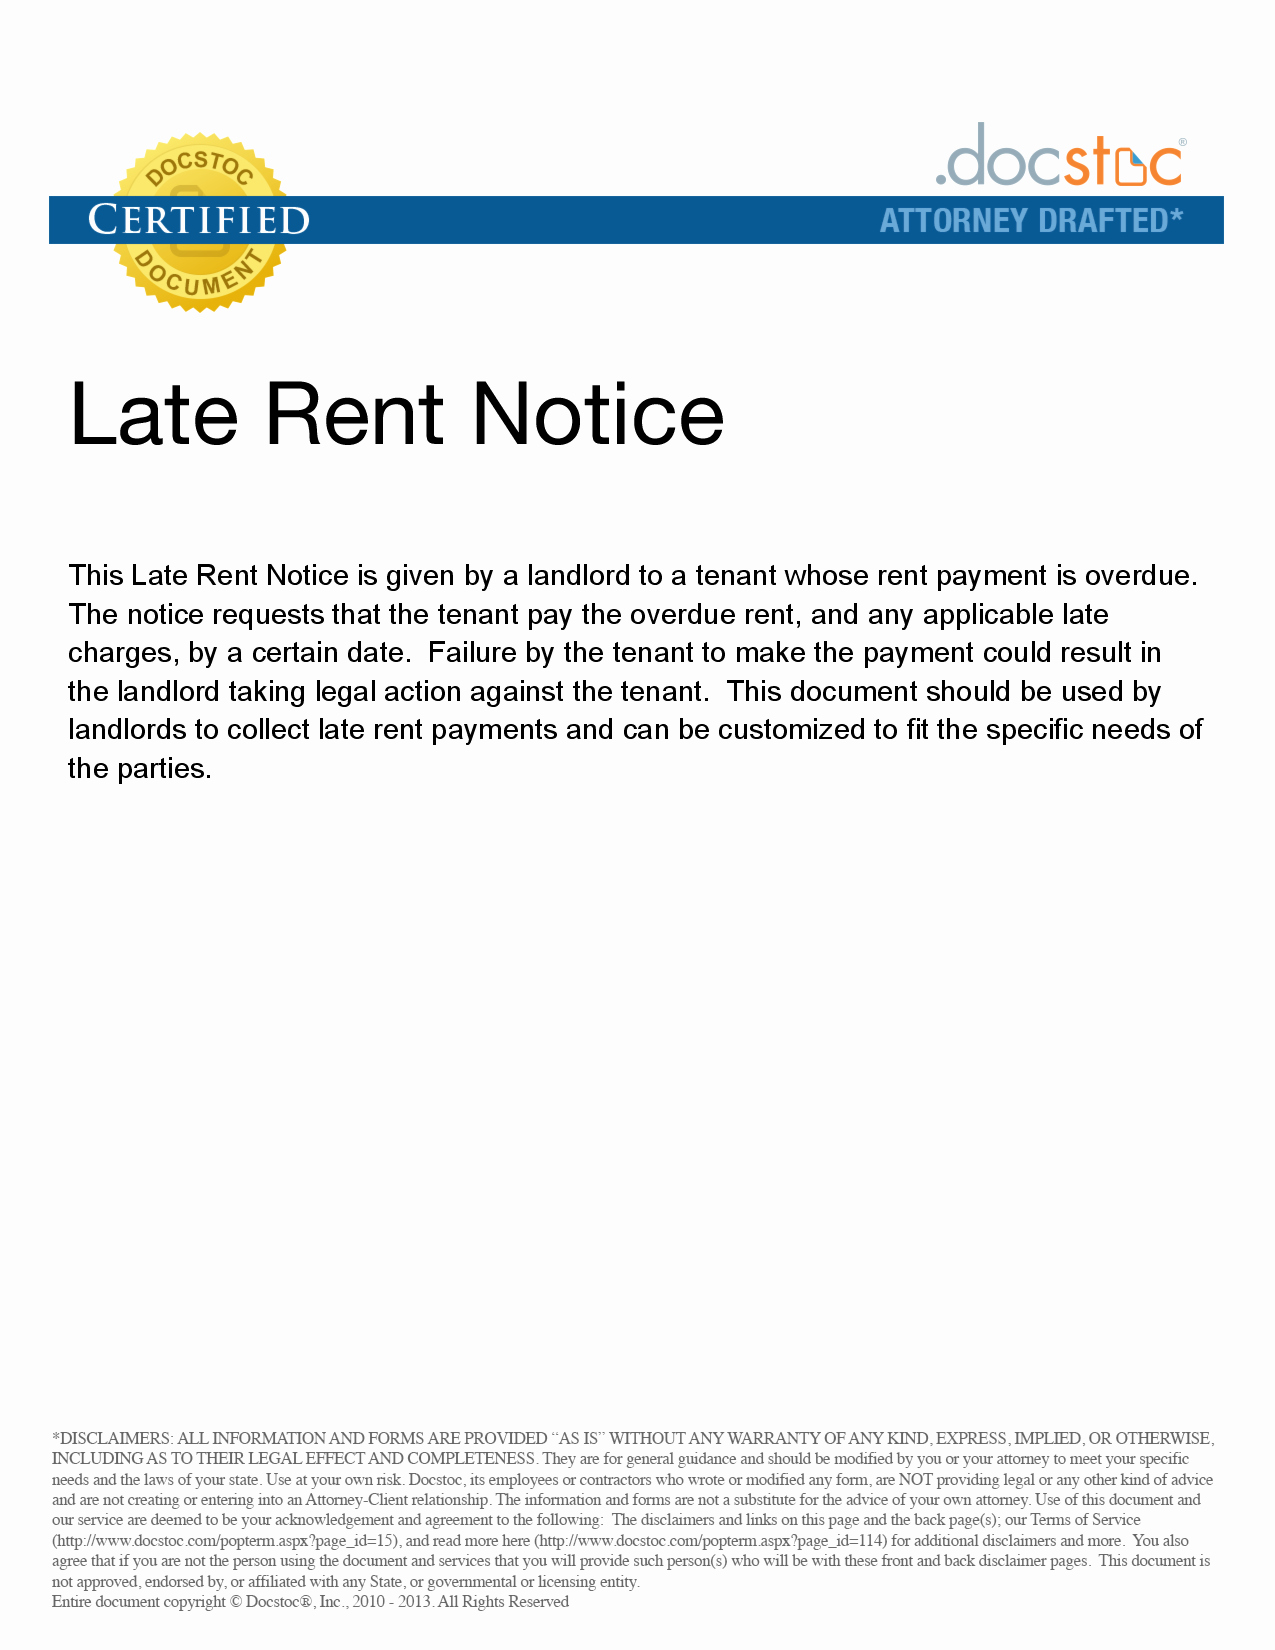 Late Rent Notice Template Beautiful Late Rent Notice Free Printable Documents